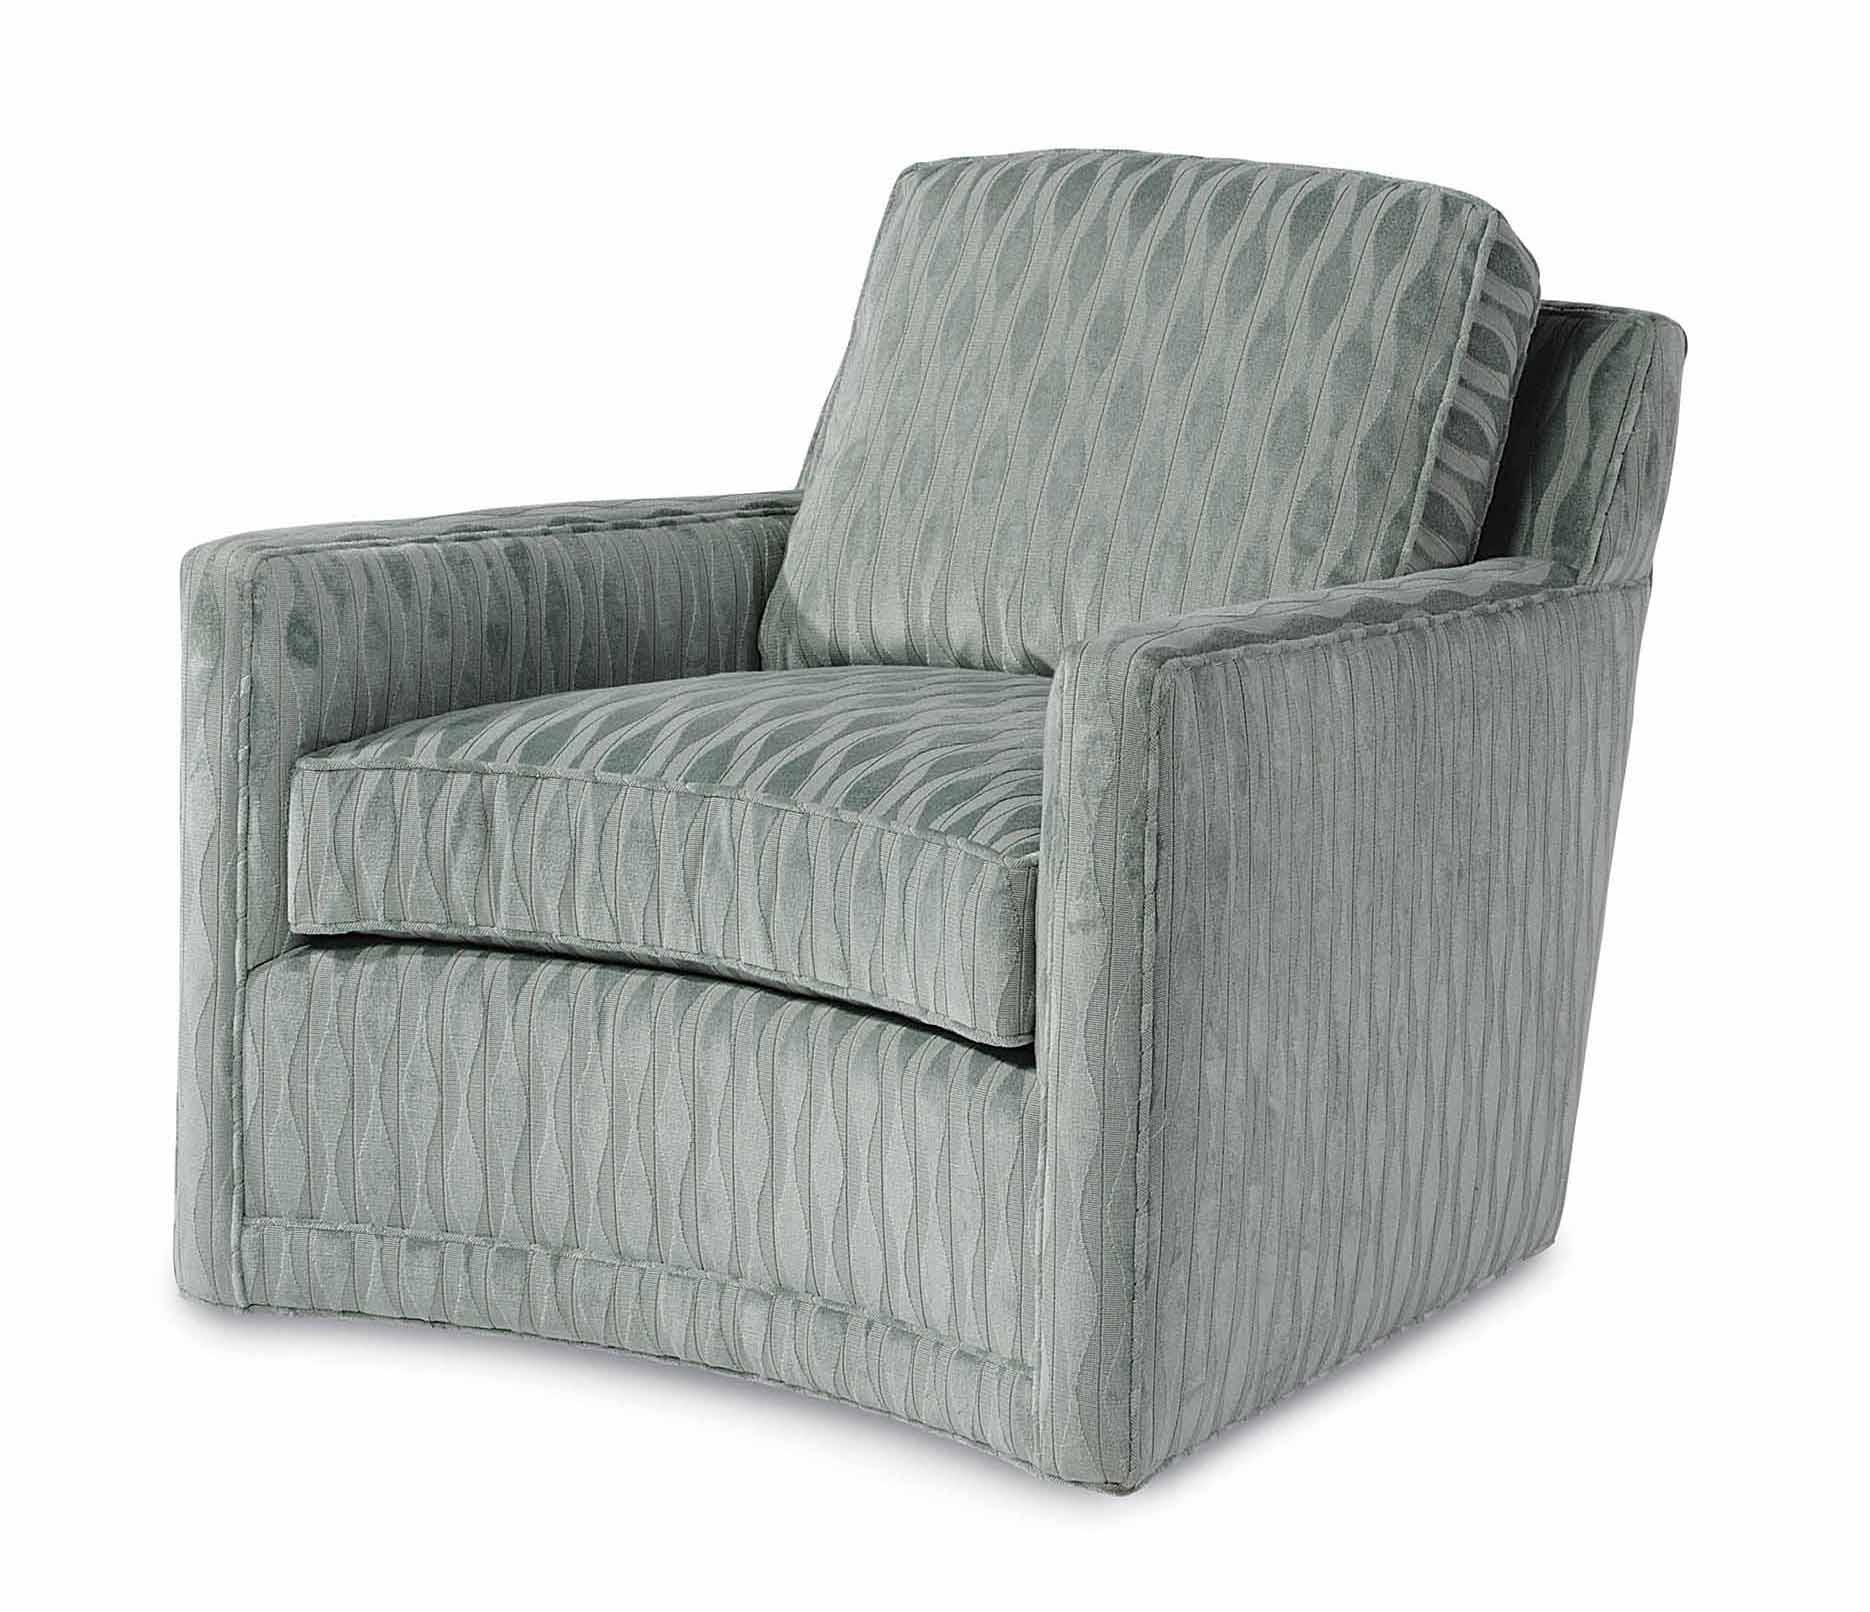 Taylor King Furniture Living Room Monahan Swivel Chair